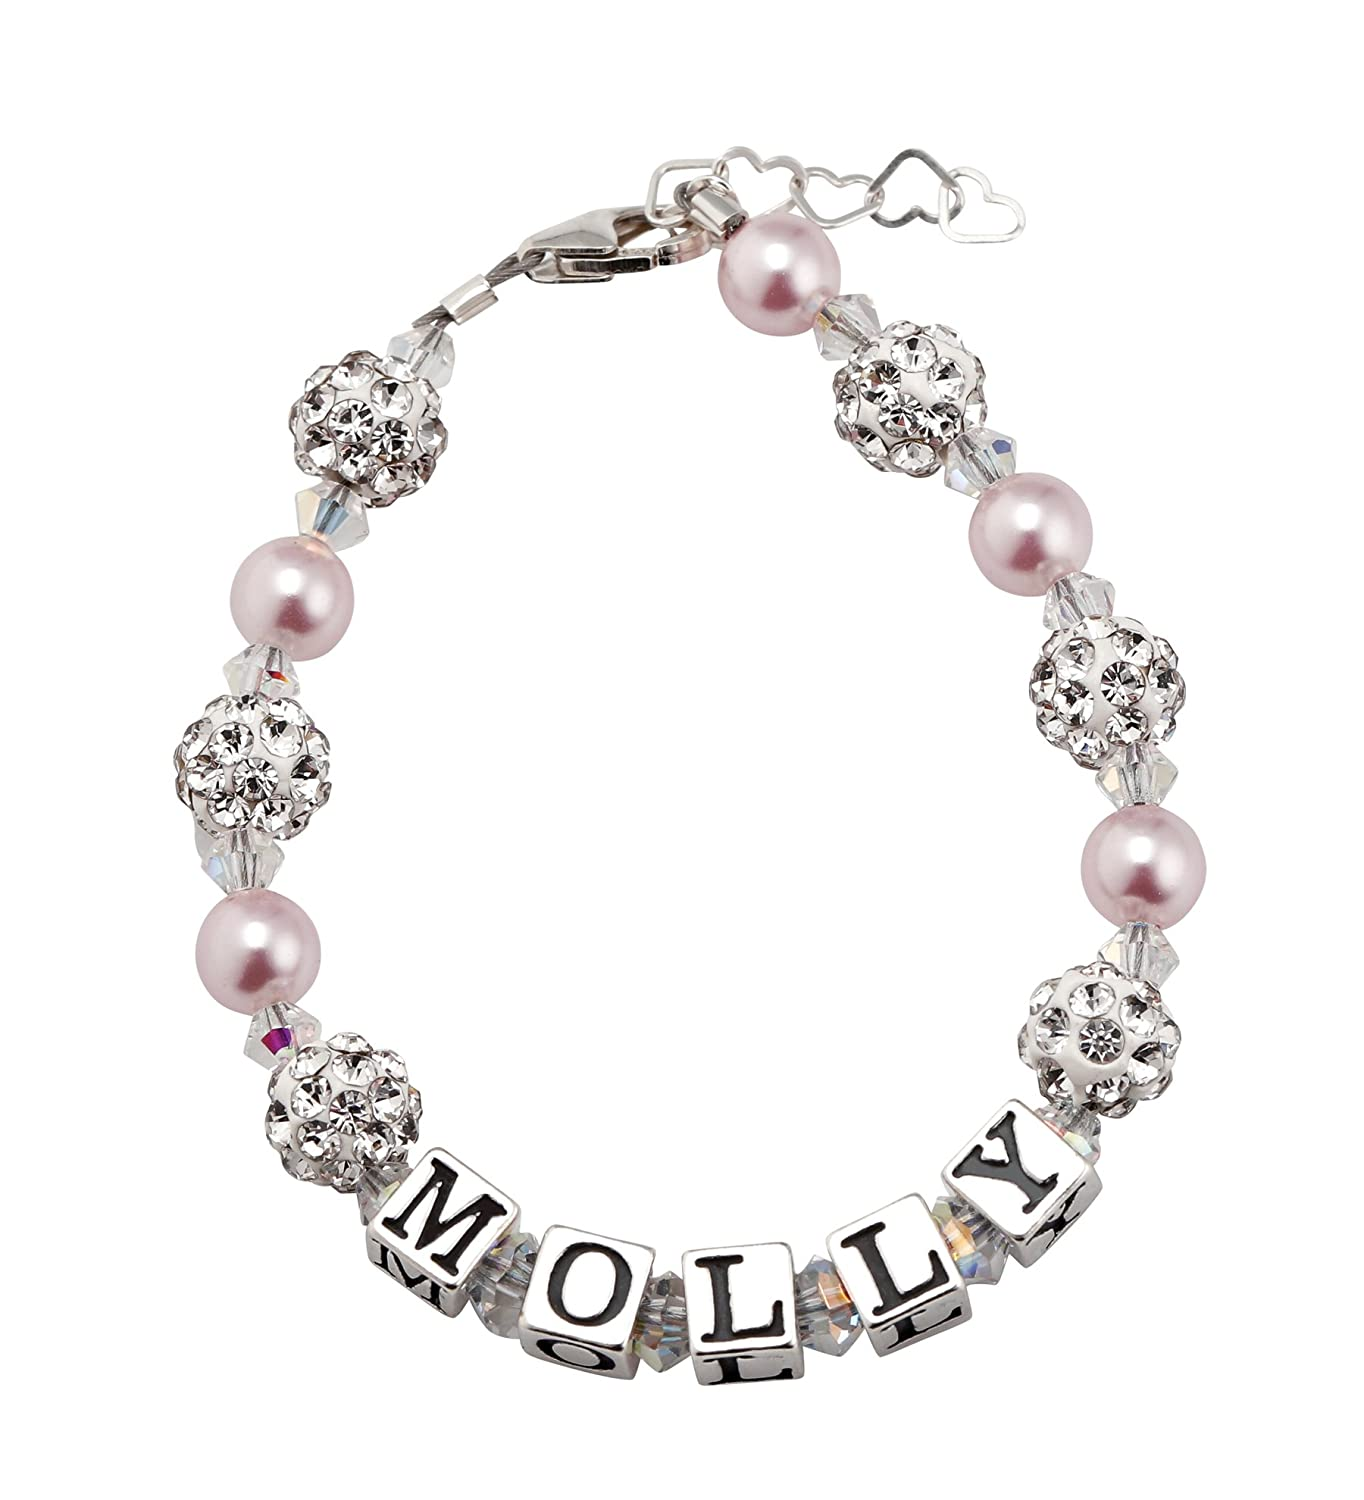 Custom Name Personalized Sparkly Beads Baby Bracelet with Pink and White Swarovski Crystals (B107_PW_M+)